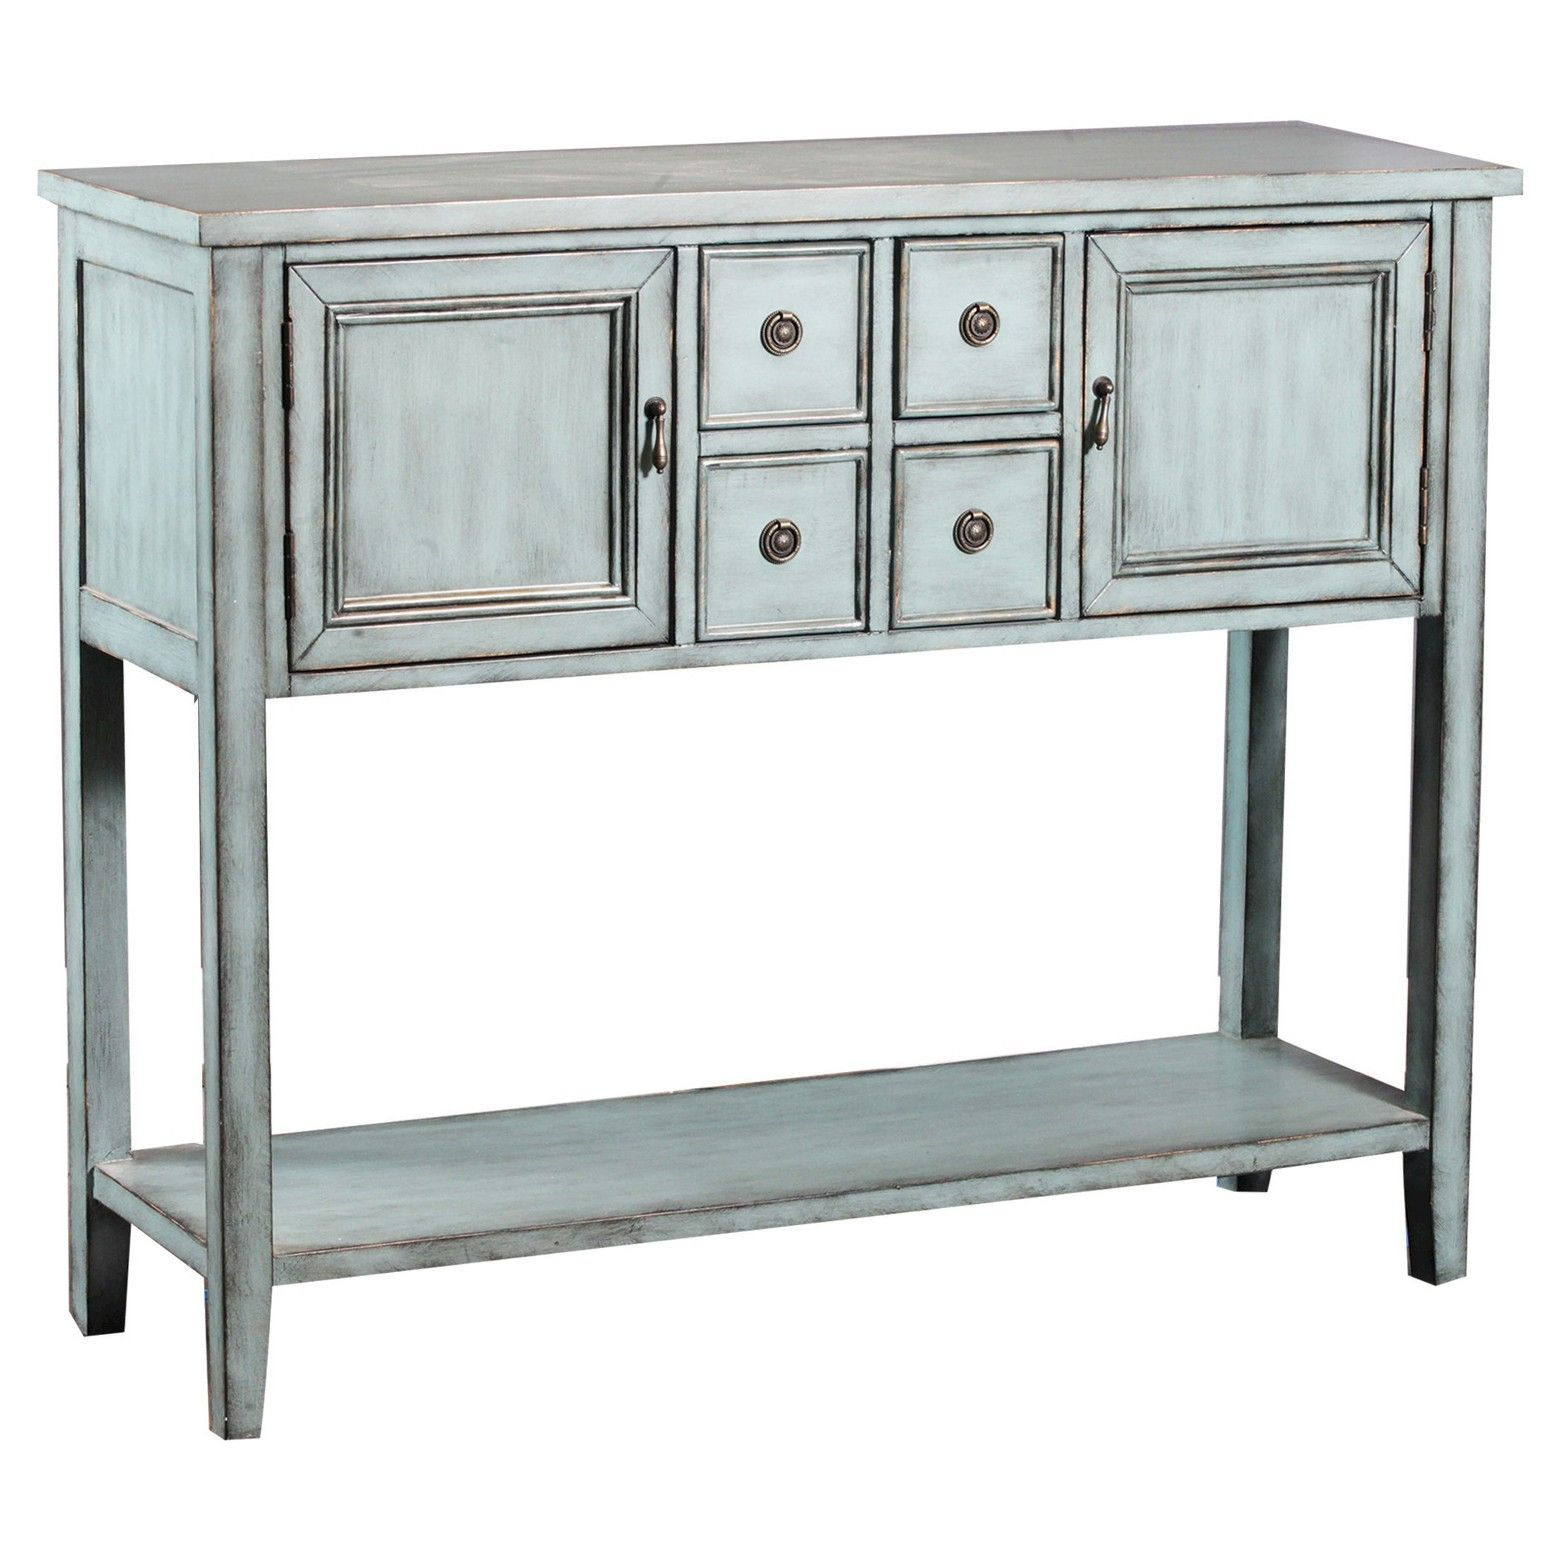 Darby Console Table Blue – Powell Company | Furniture And With Regard To Ellenton Sideboards (Gallery 22 of 30)